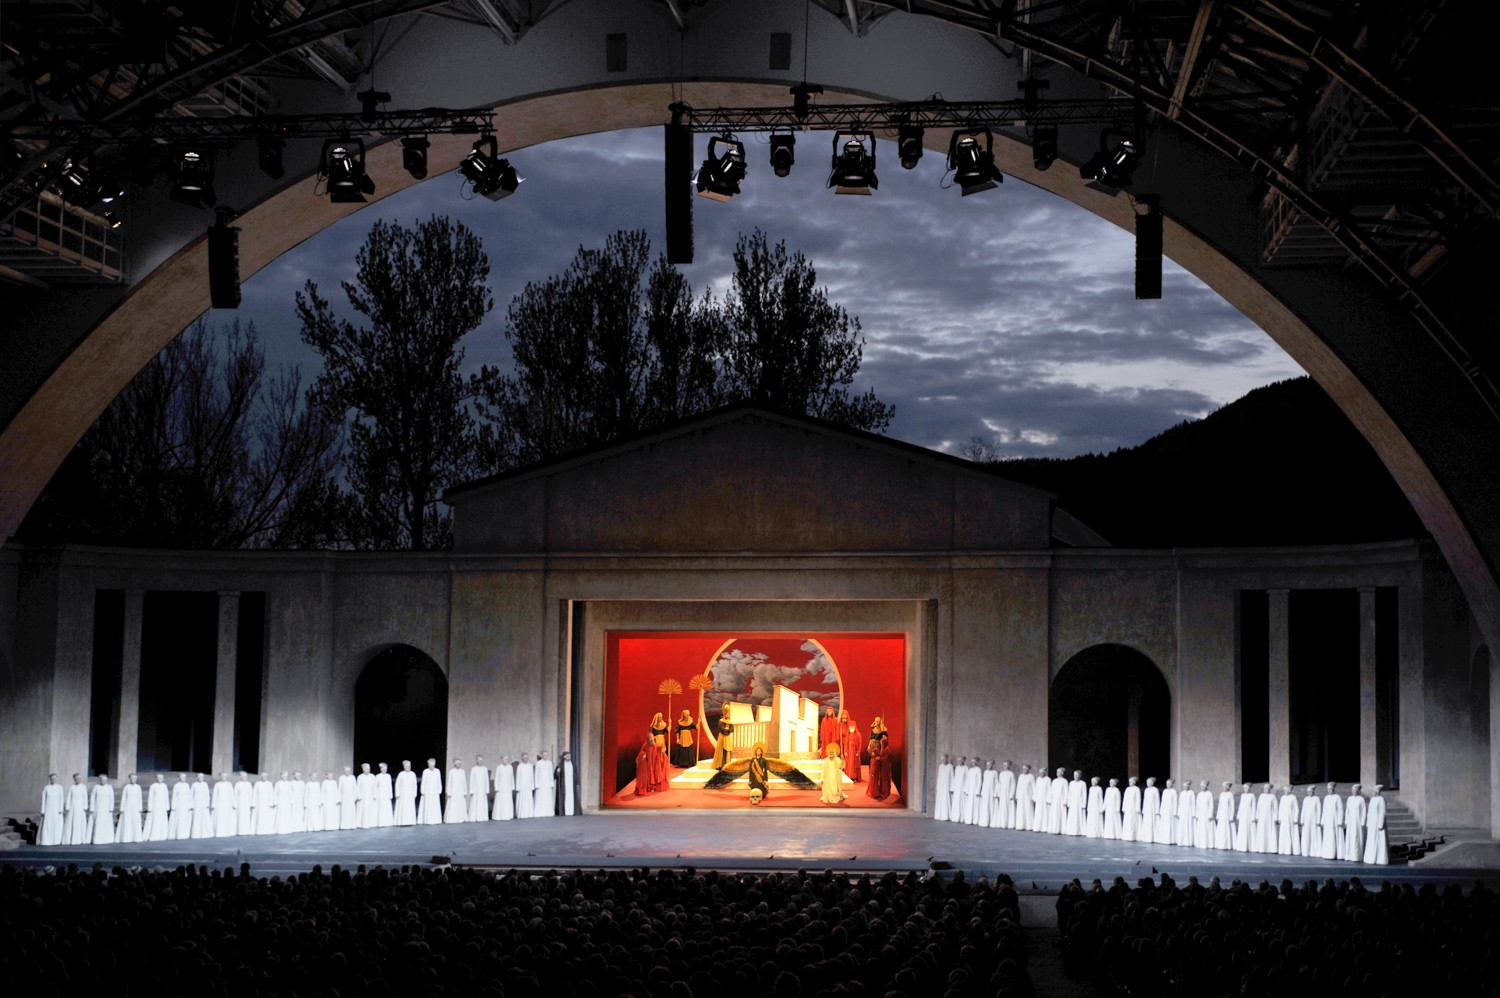 Passion Play Theatre night time Photos: Oberammergau Passion Play 2020